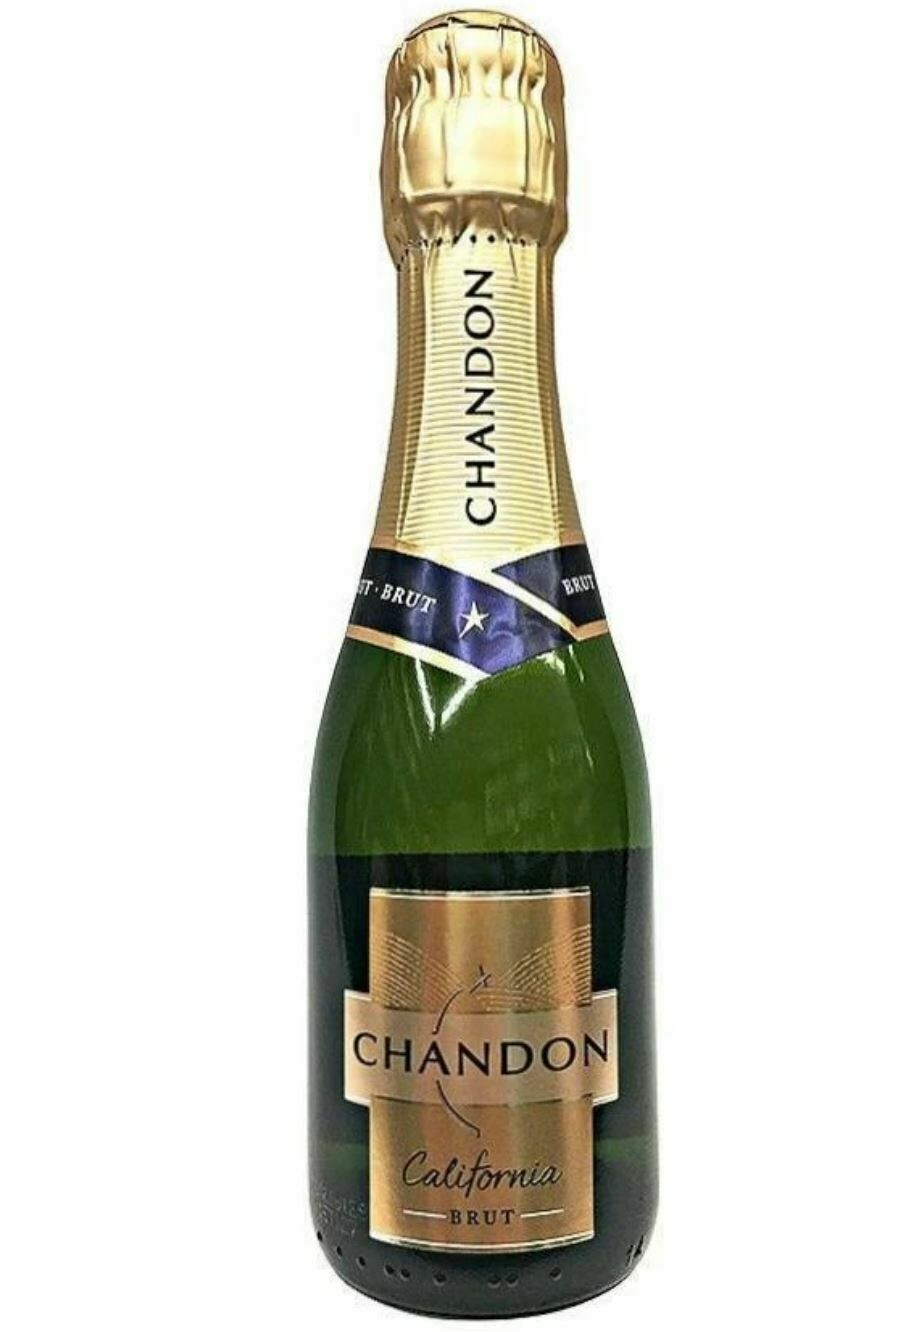 Chandon, Brut Split